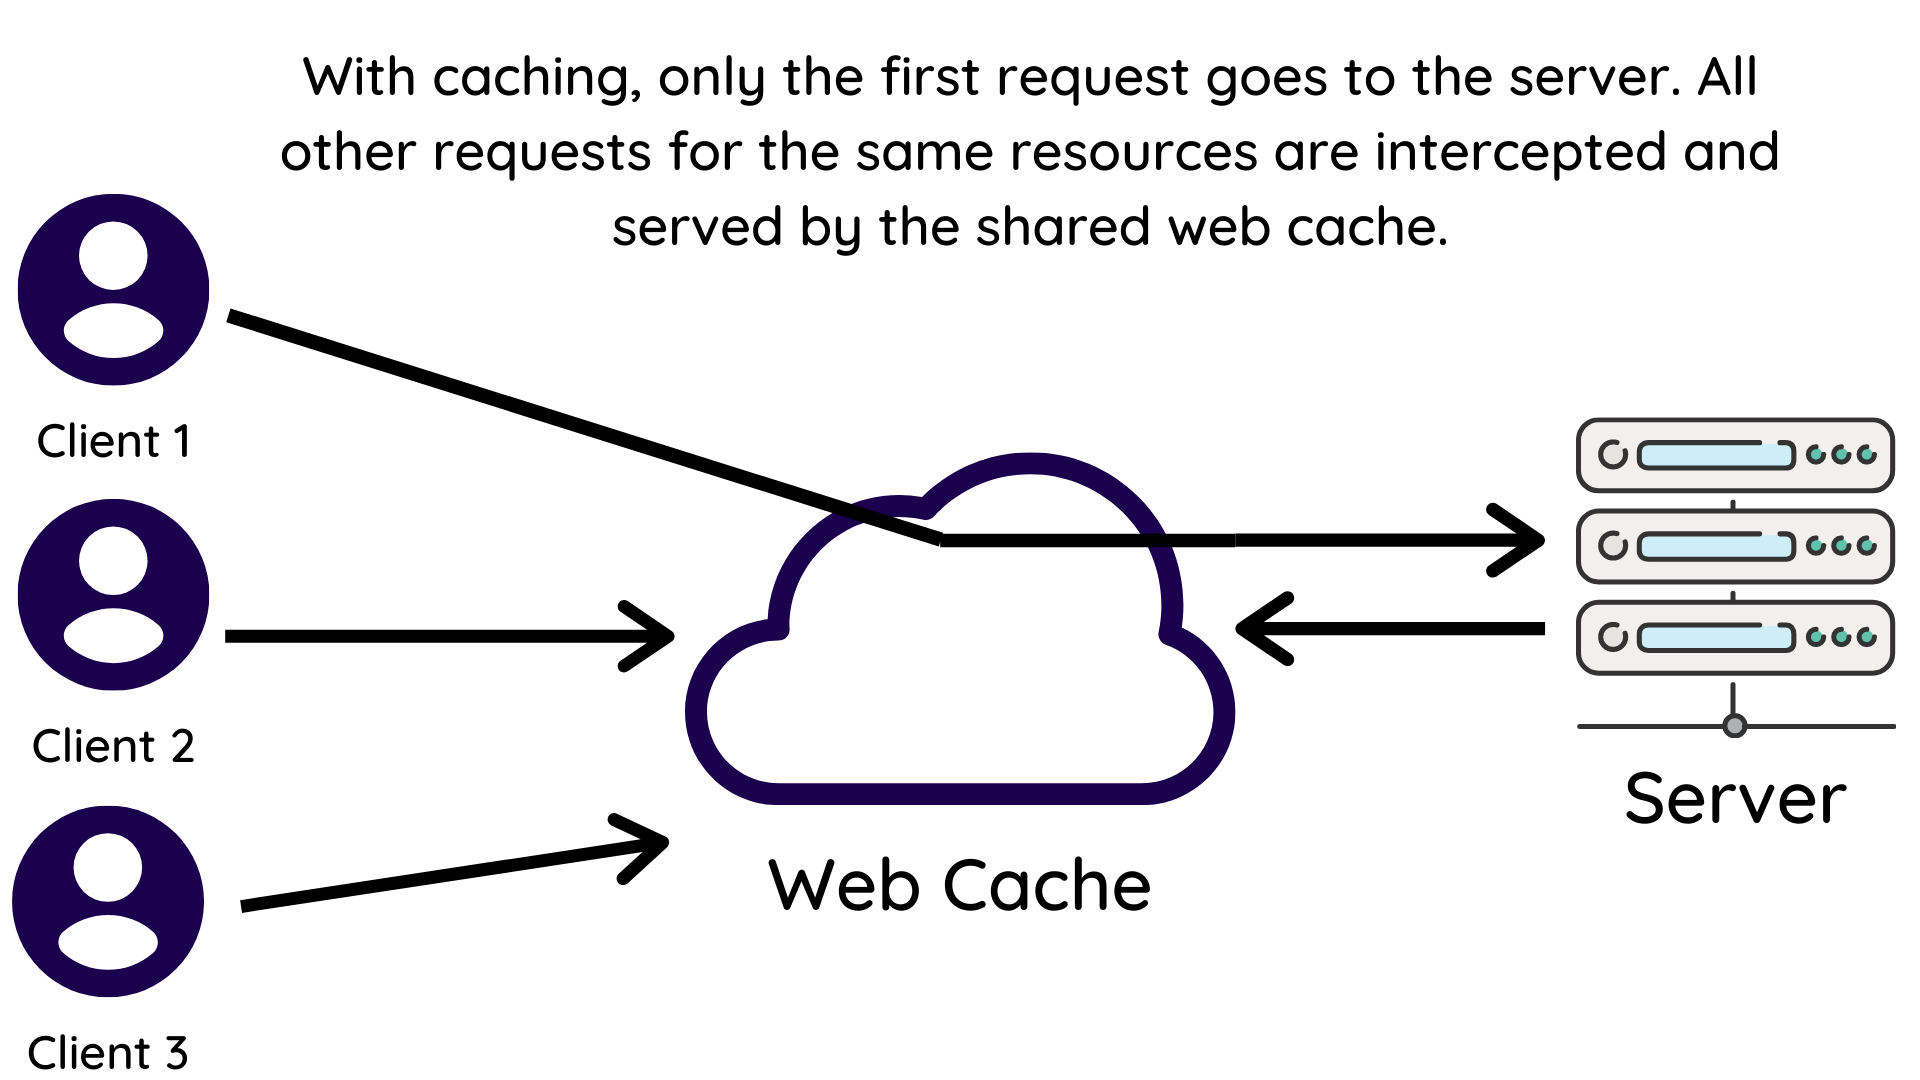 HTTP requests going through web cache